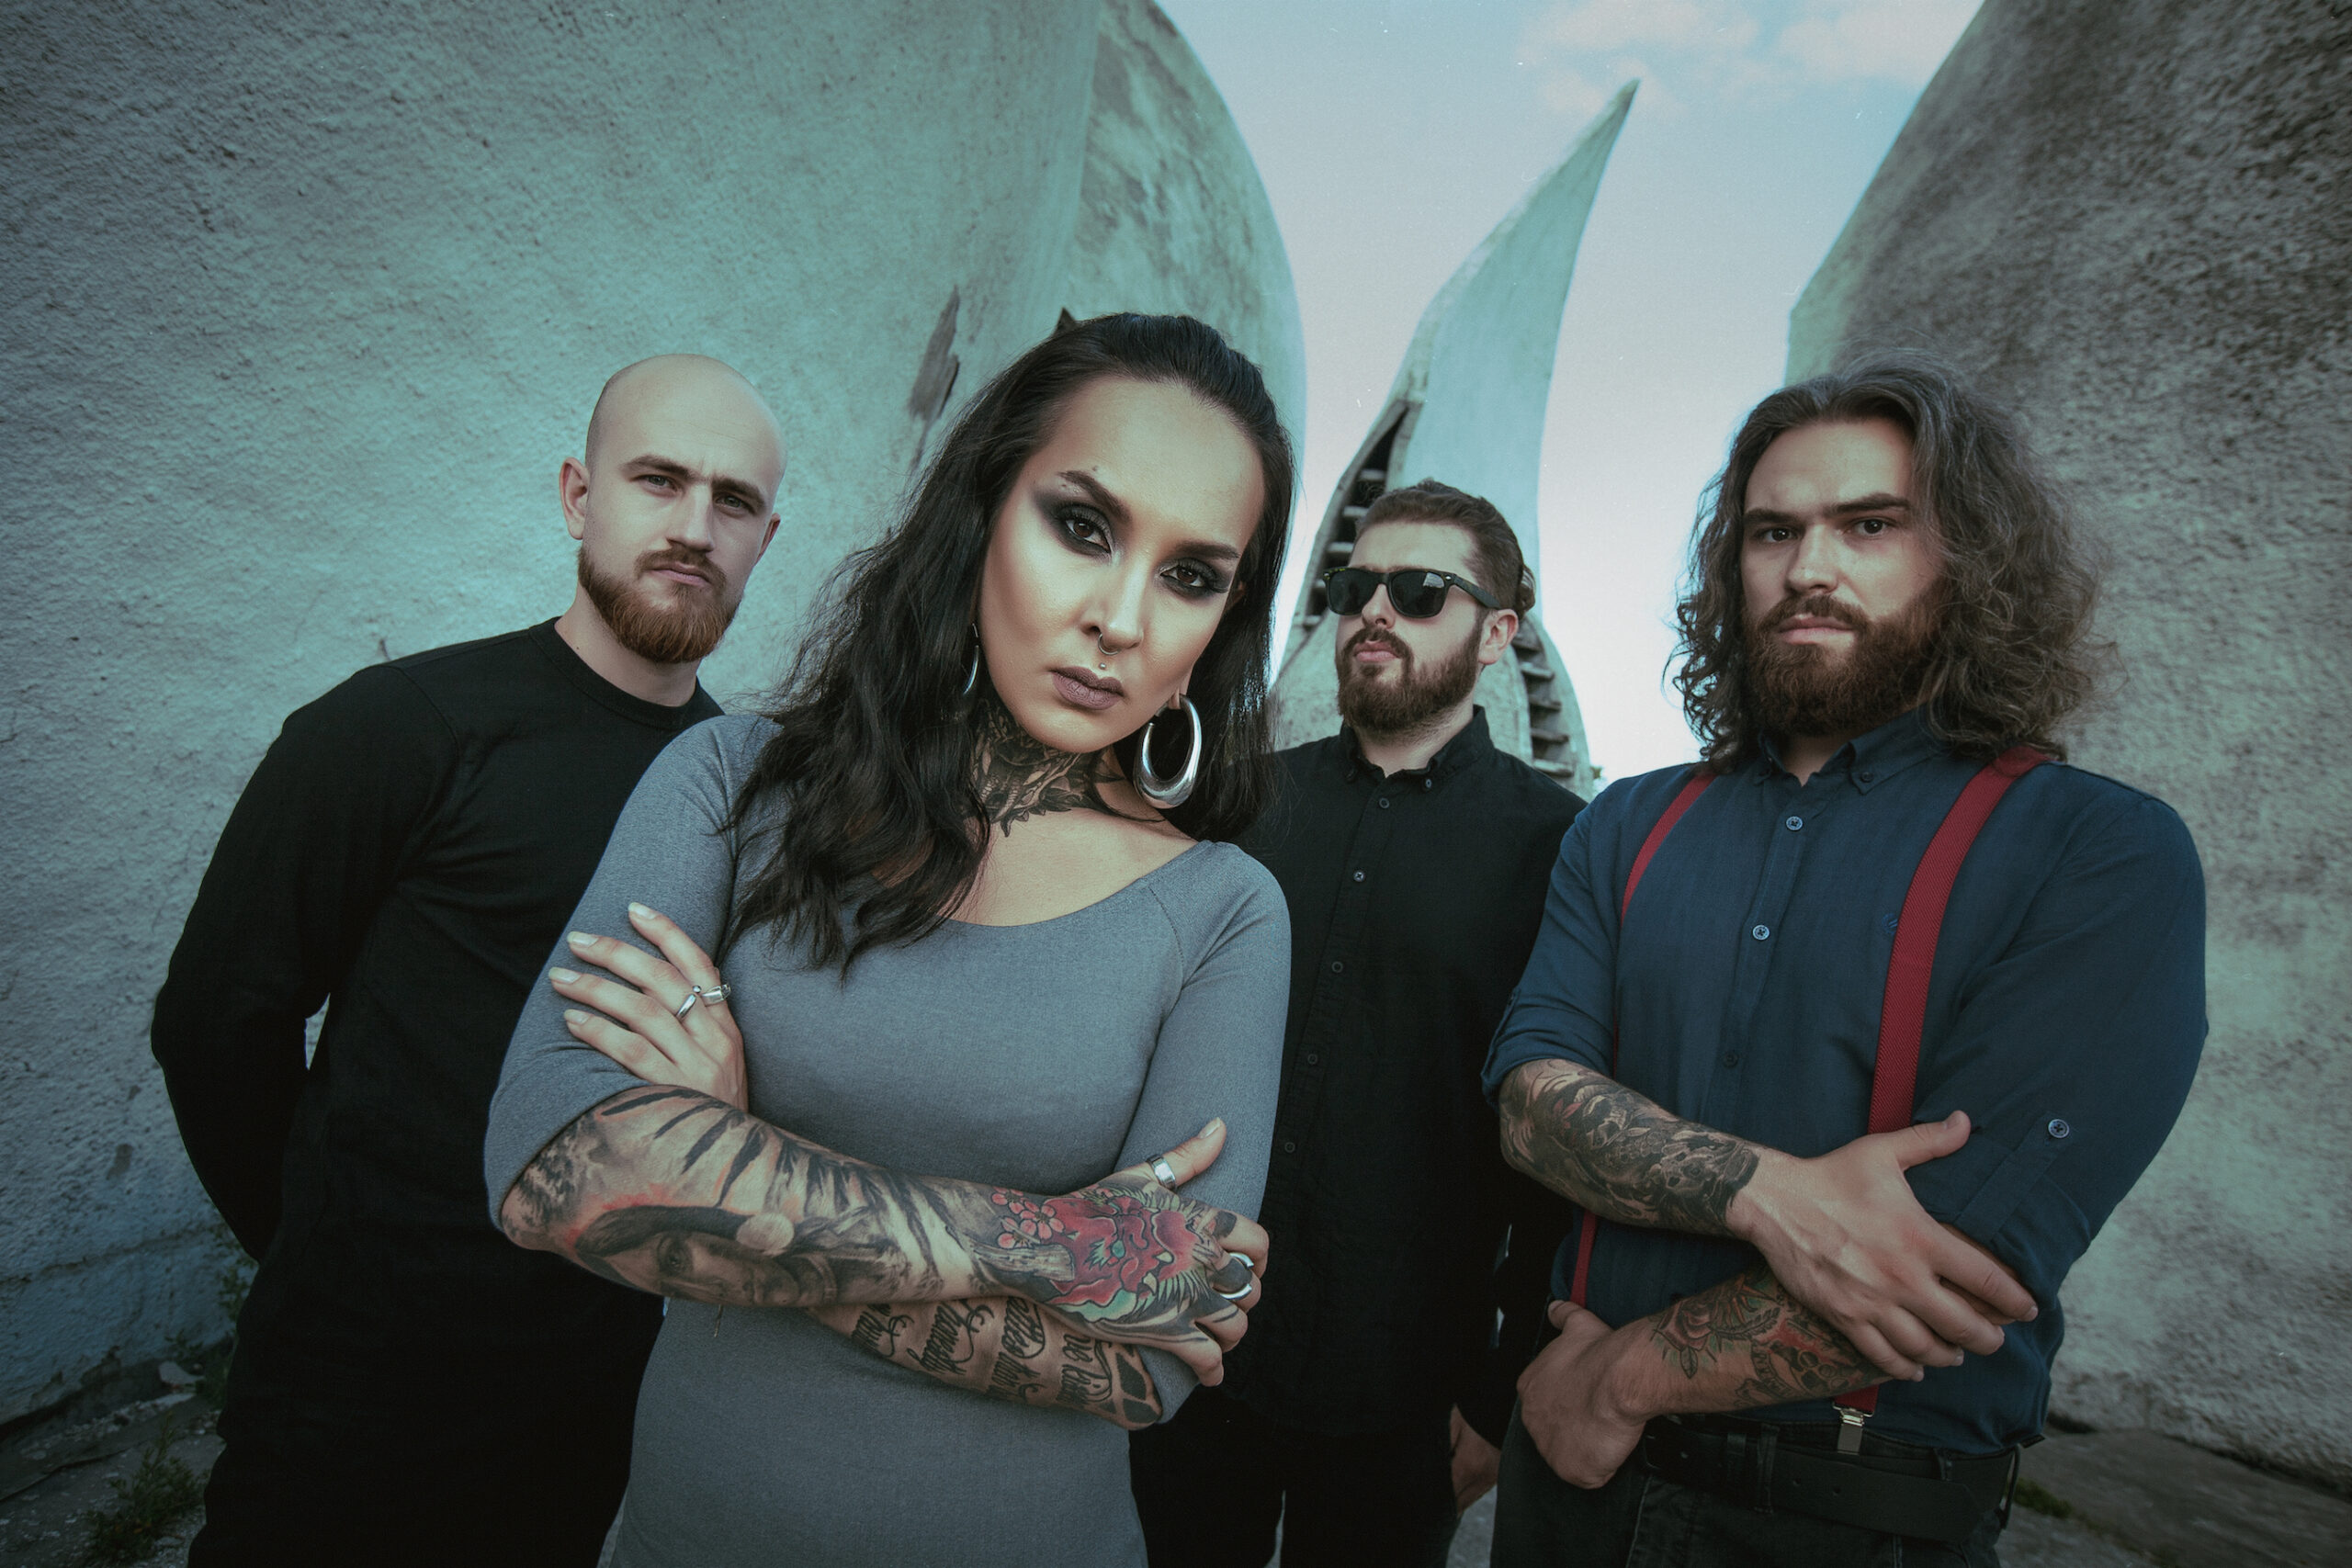 INTERVIEW: Jinjer discuss 'Macro,' touring the U.S., and 2020 plans